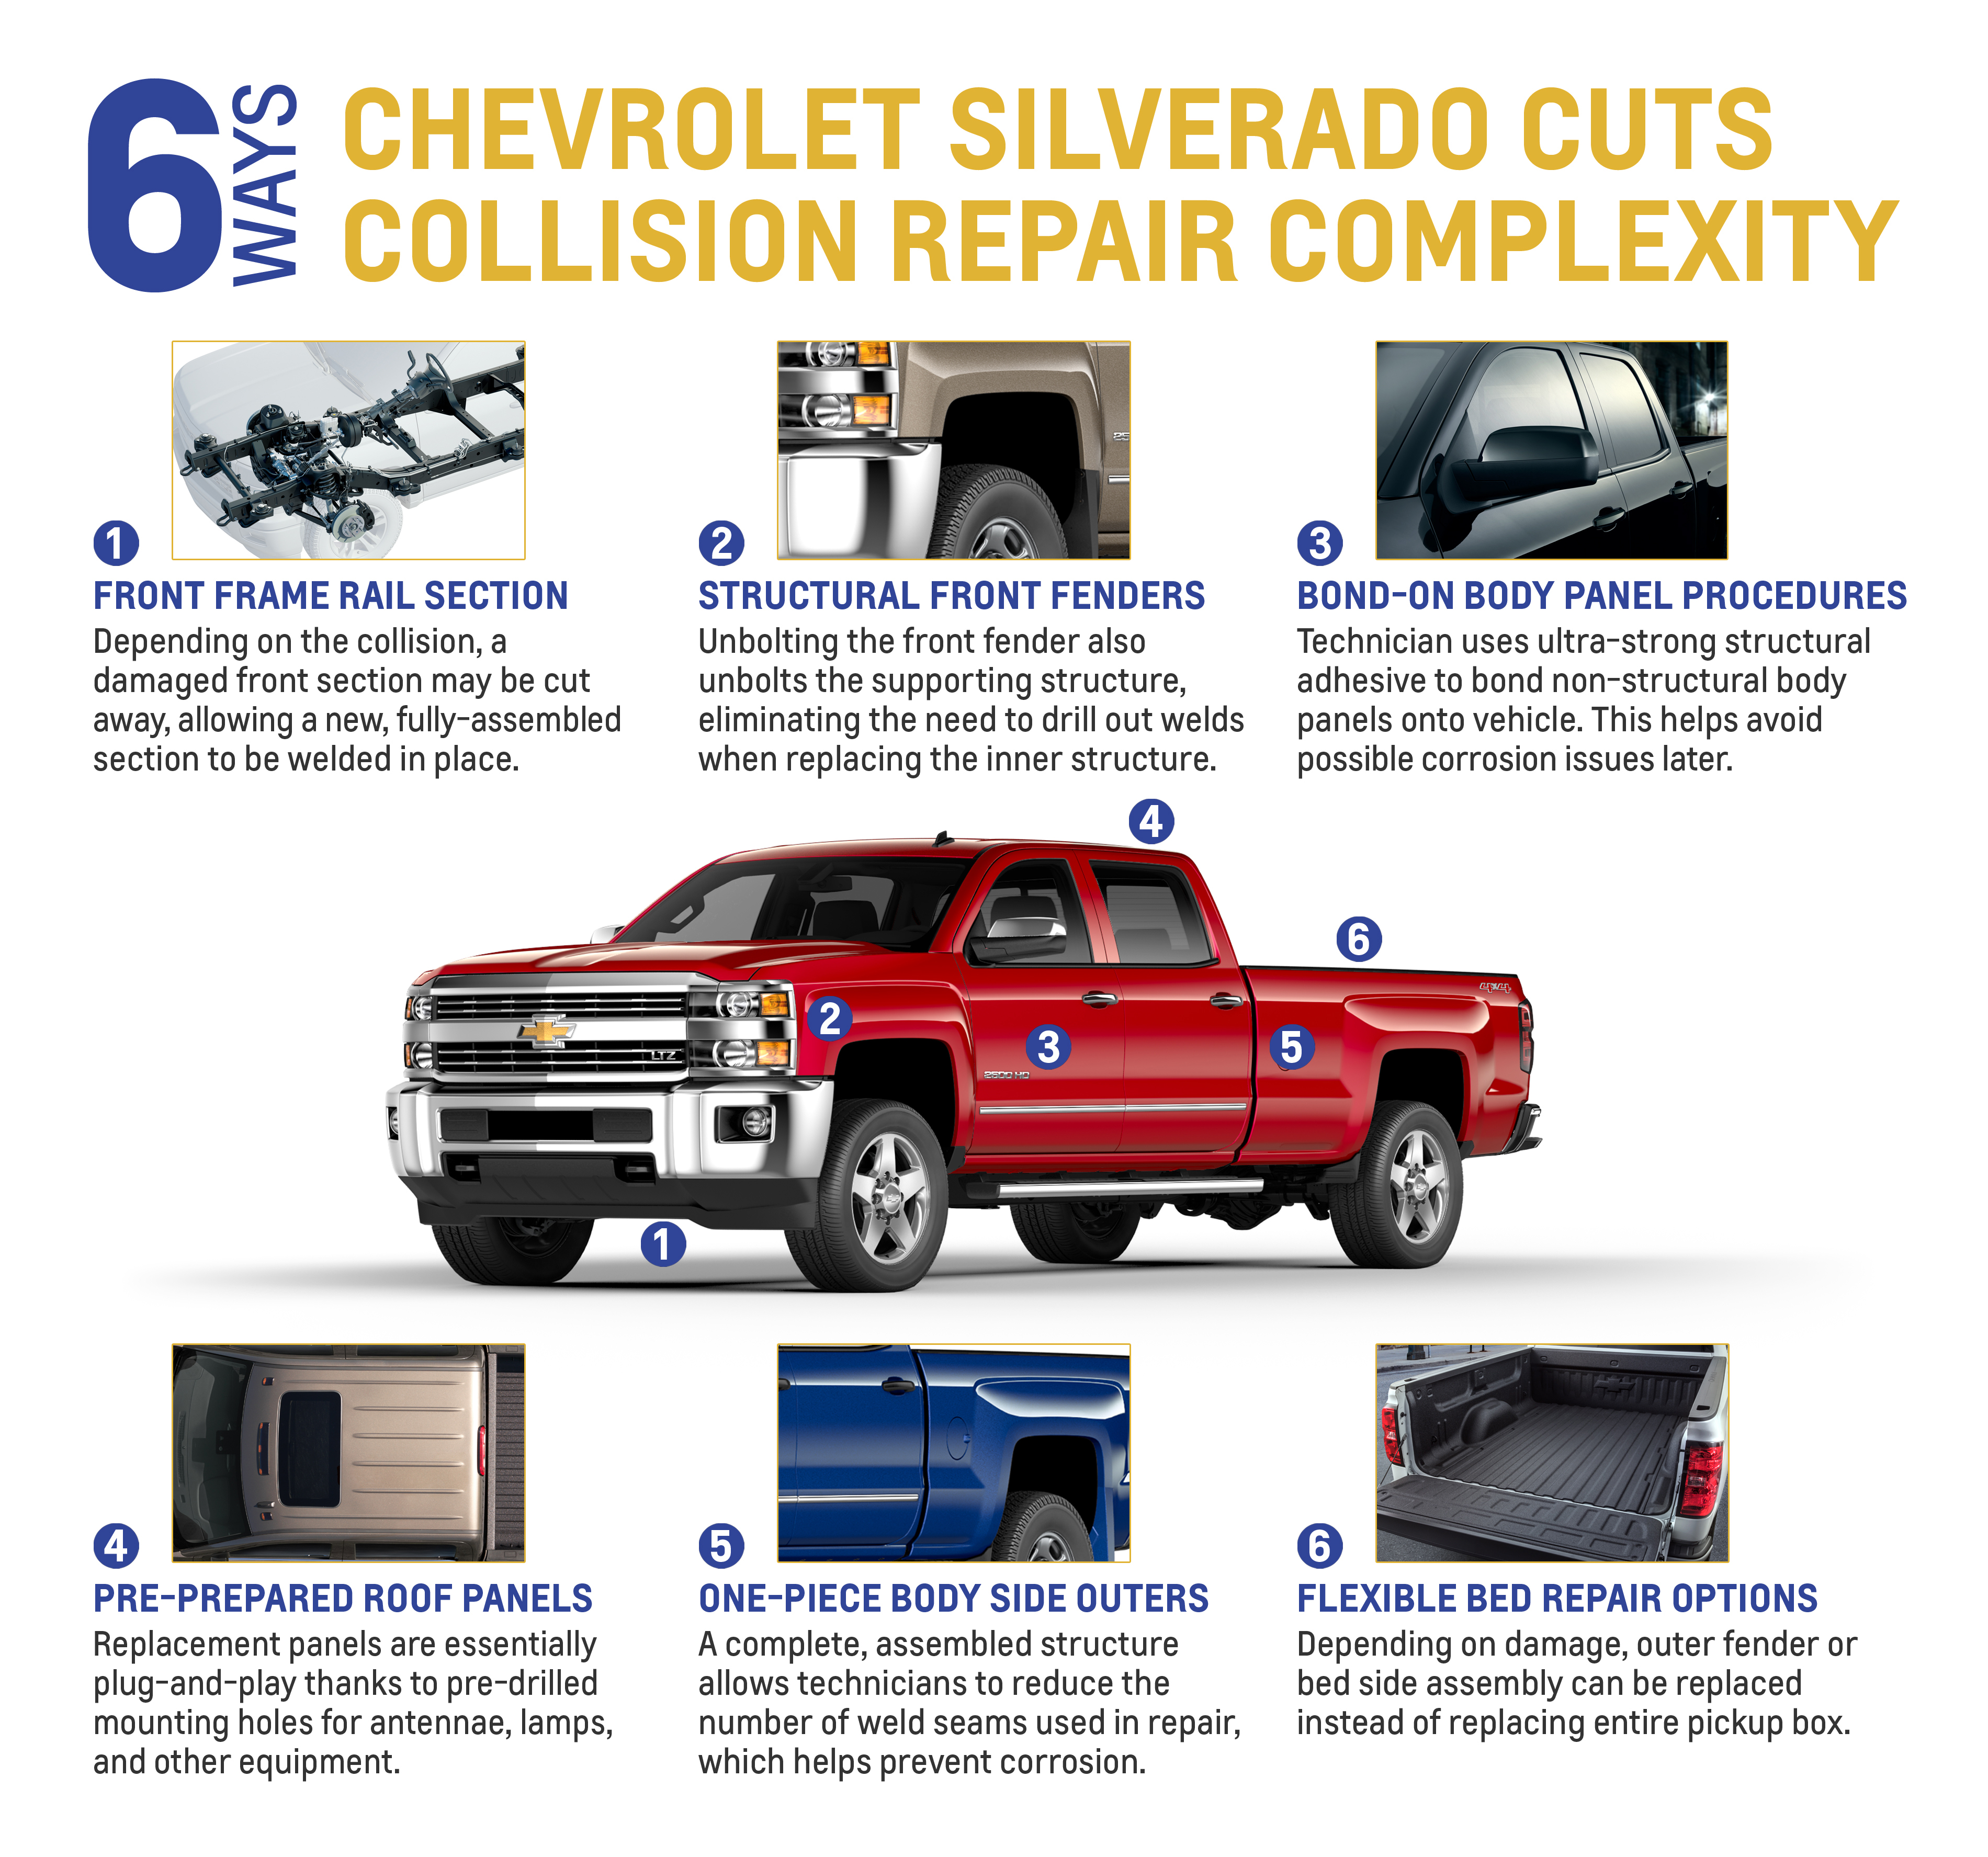 Six Ways Silverado Cuts Complexity of Collision Repair